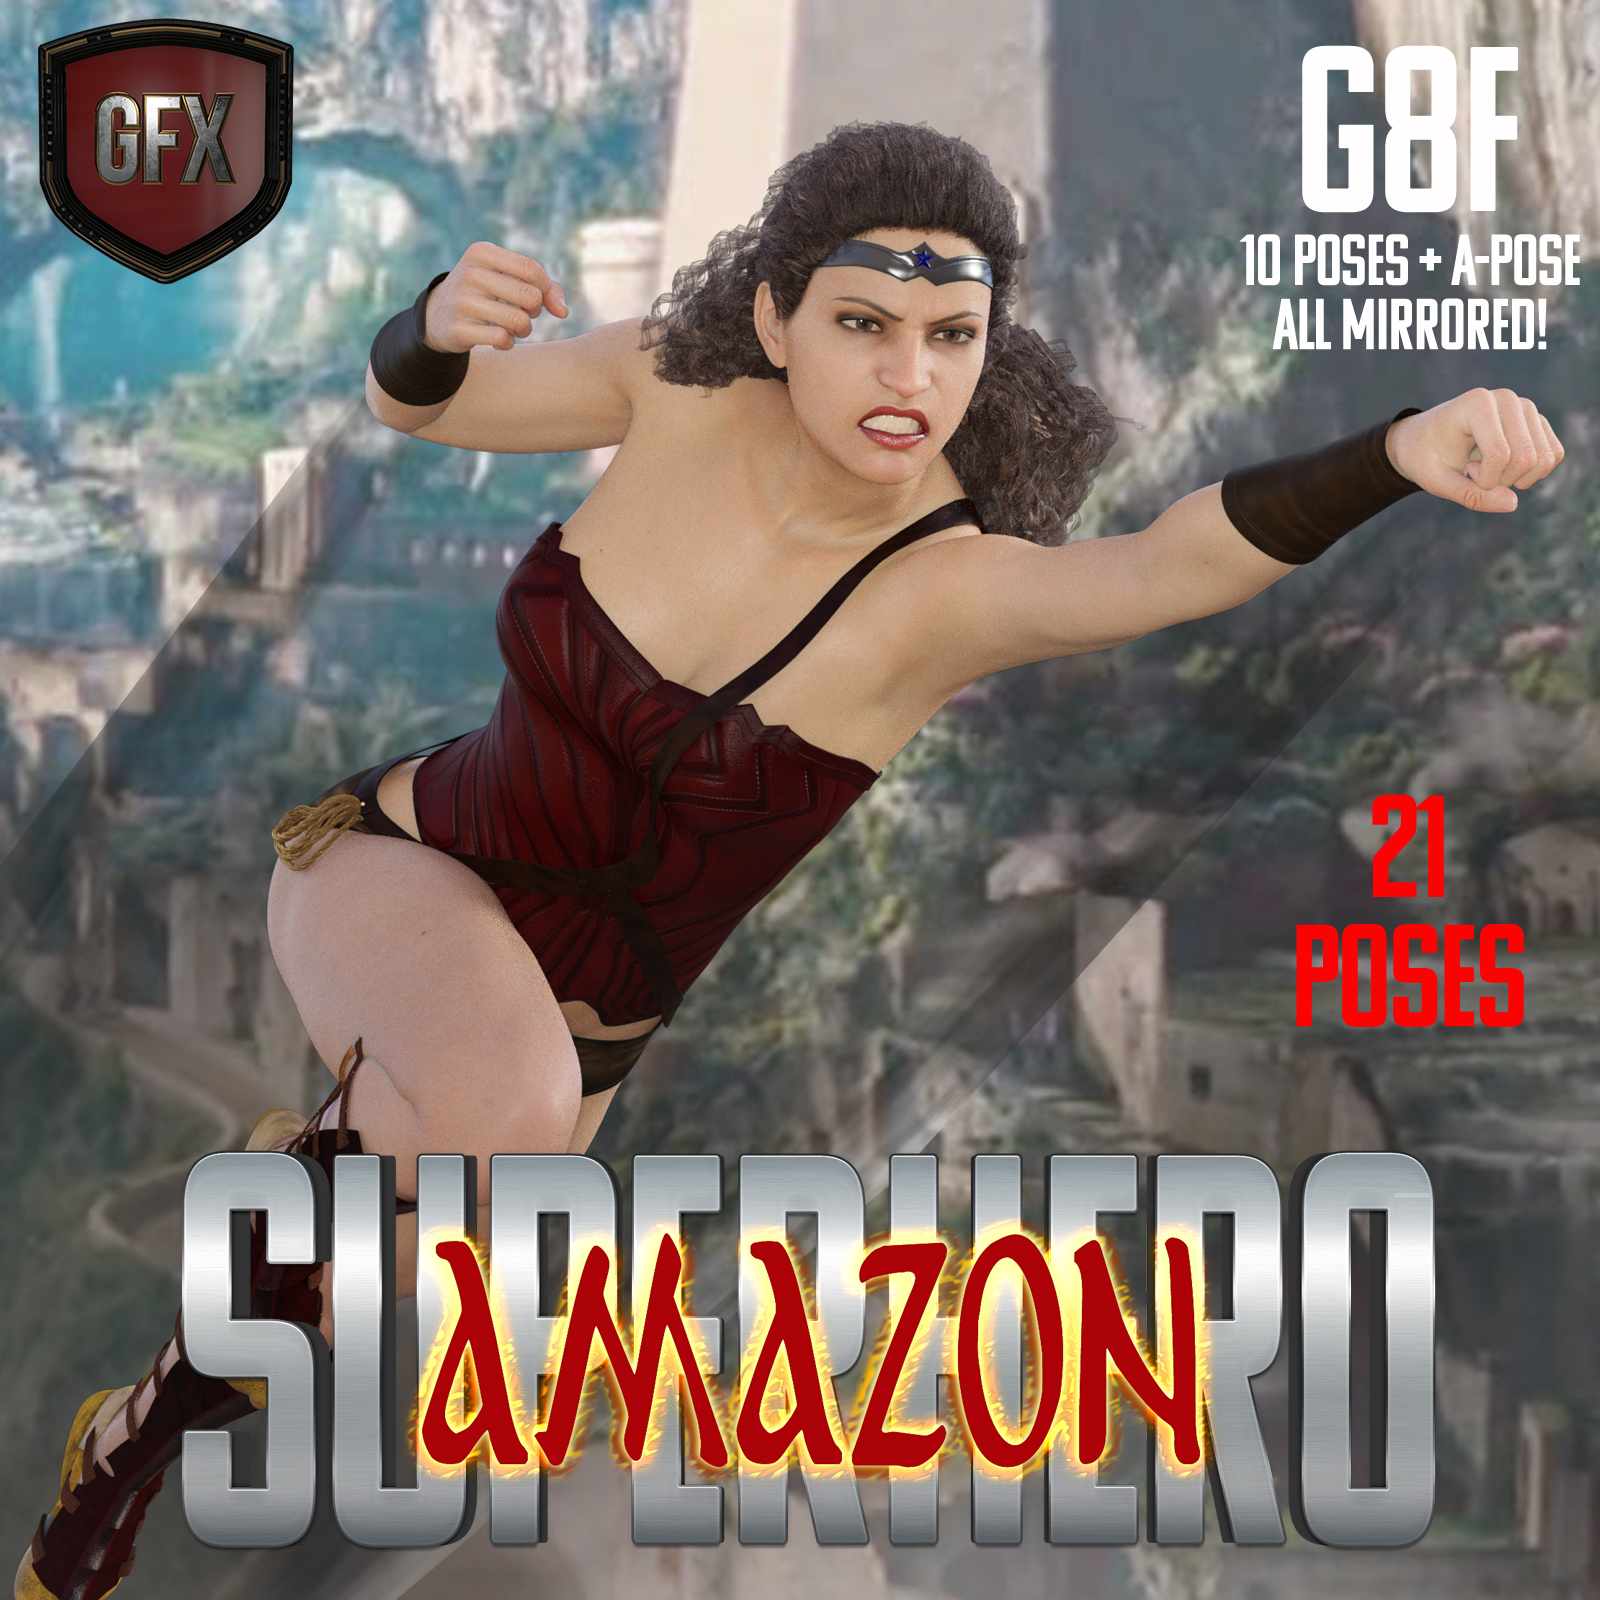 SuperHero Amazon for G8F Volume 1 by GriffinFX